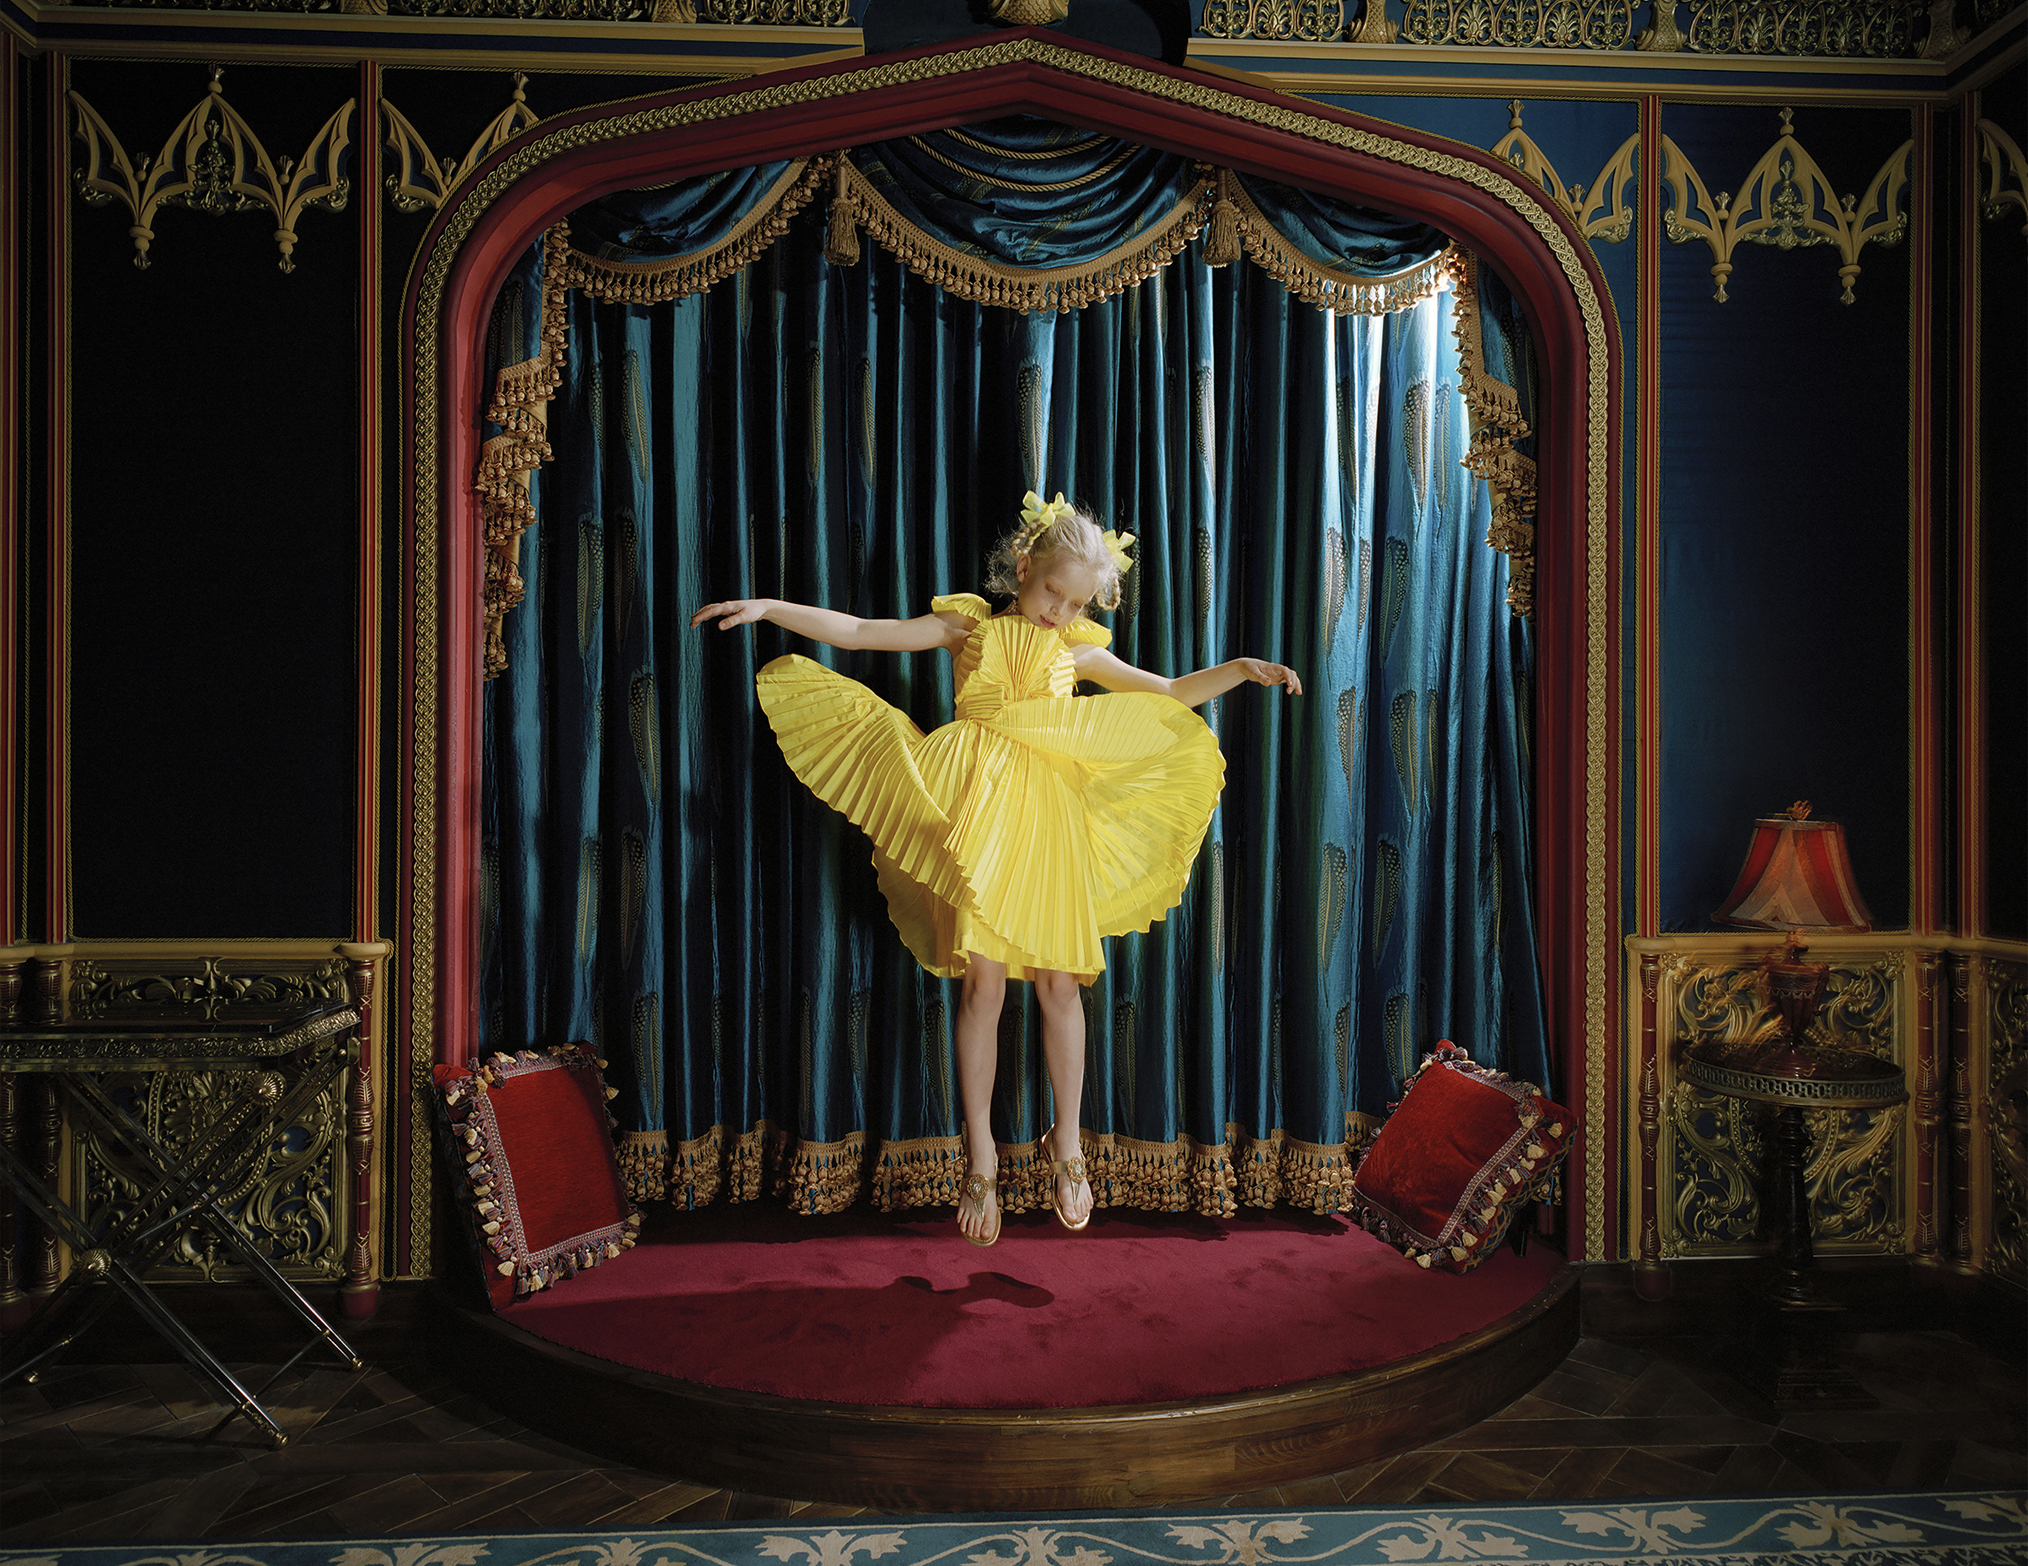 Varvara in Her Home Cinema, Moscow, 2010, photographed by Anna Skladmann